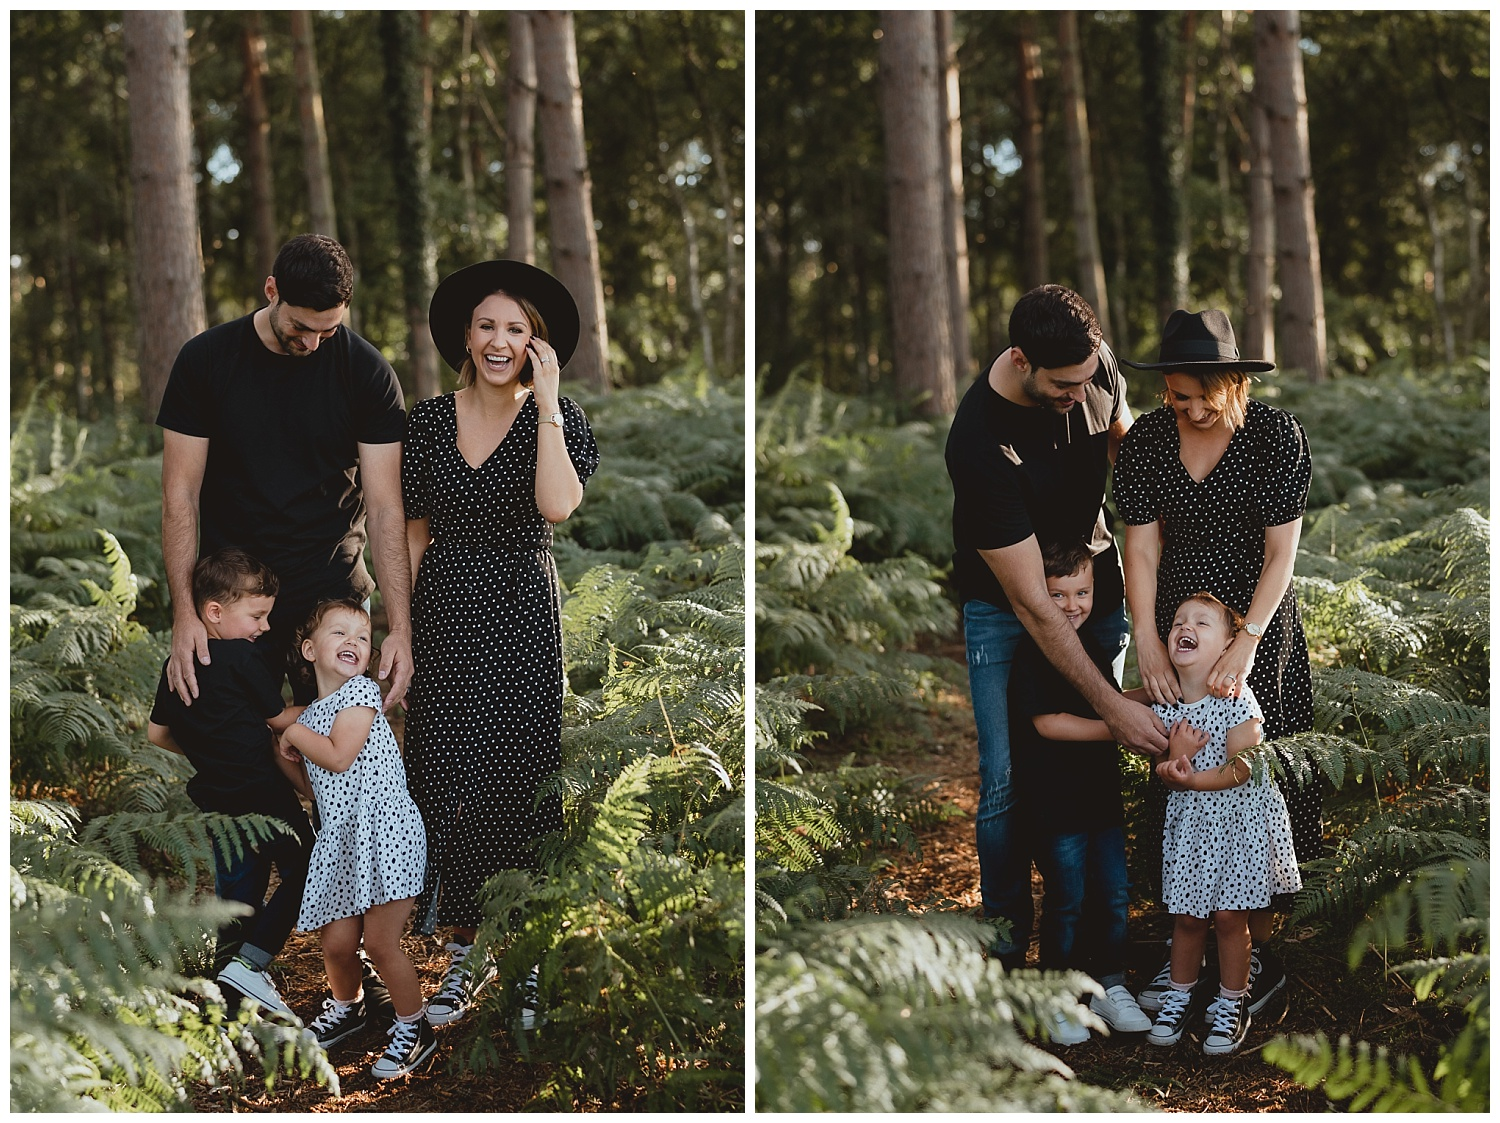 norfolk family photography by georgia rachael